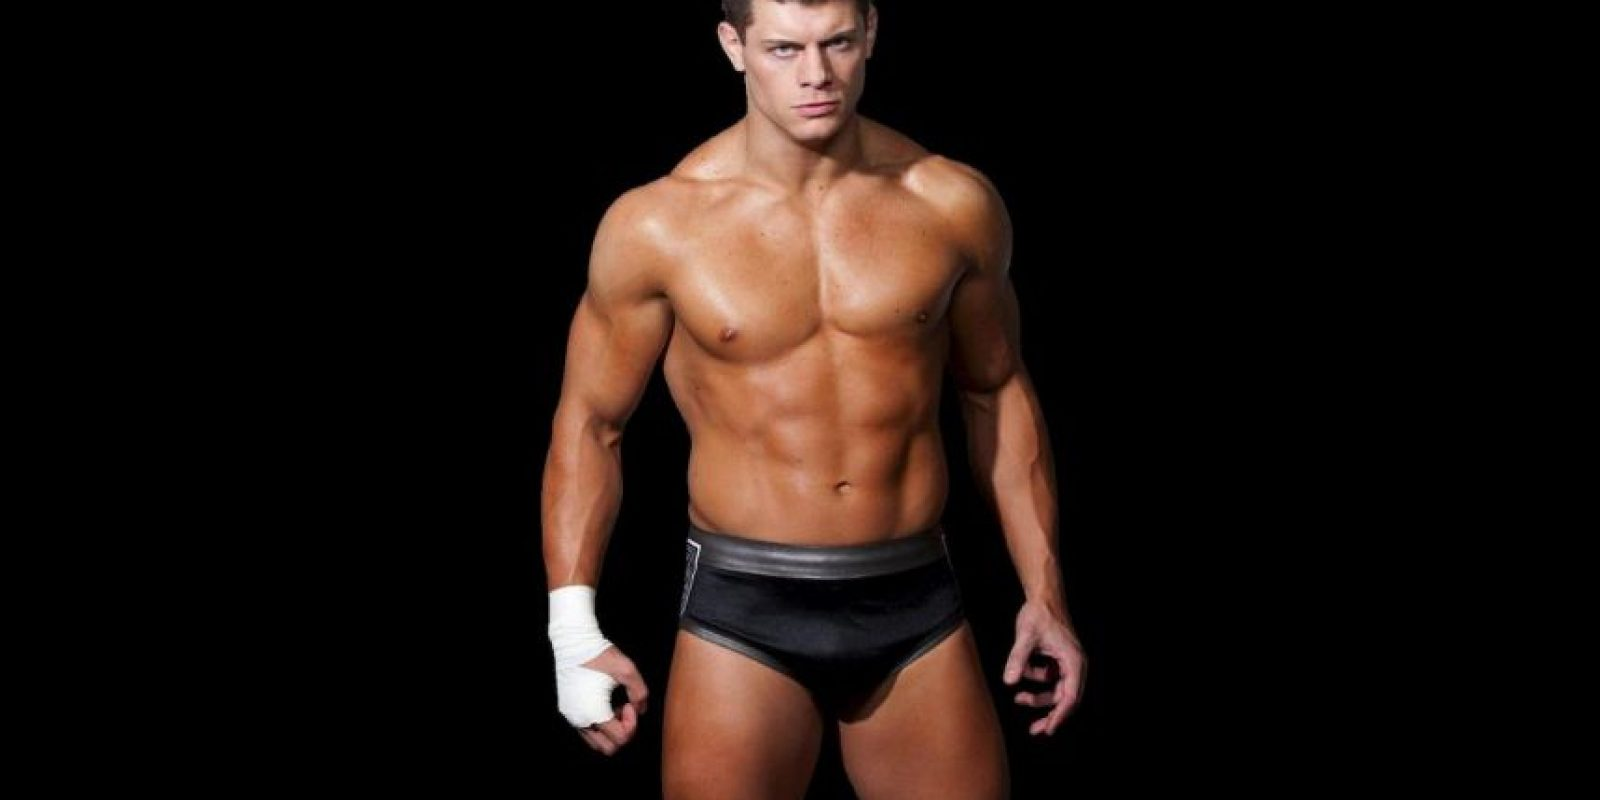 cody-rhodes-naked-photo-picture-cock-gigantic-white